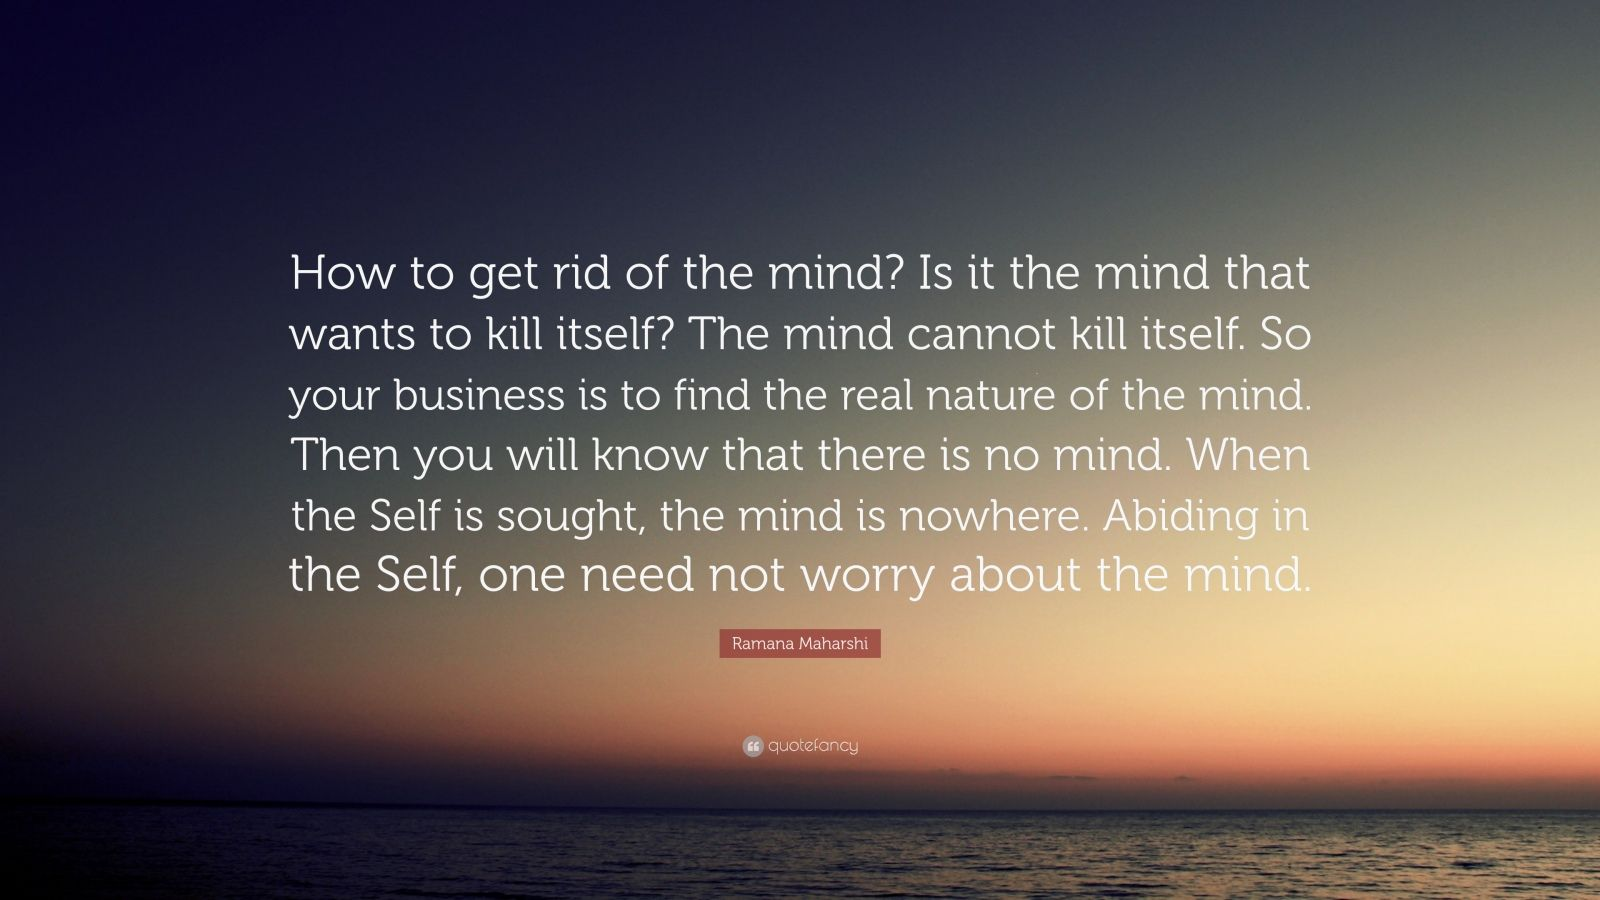 "Ramana Maharshi Quote: ""How to get rid of the mind? Is it the mind that wants to kill itself? The mind cannot kill itself. So your business is to find the real nature of the mind. Then you will know that there is no mind. When the Self is sought, the mind is nowhere. Abiding in the Self, one need not worry about the mind."""